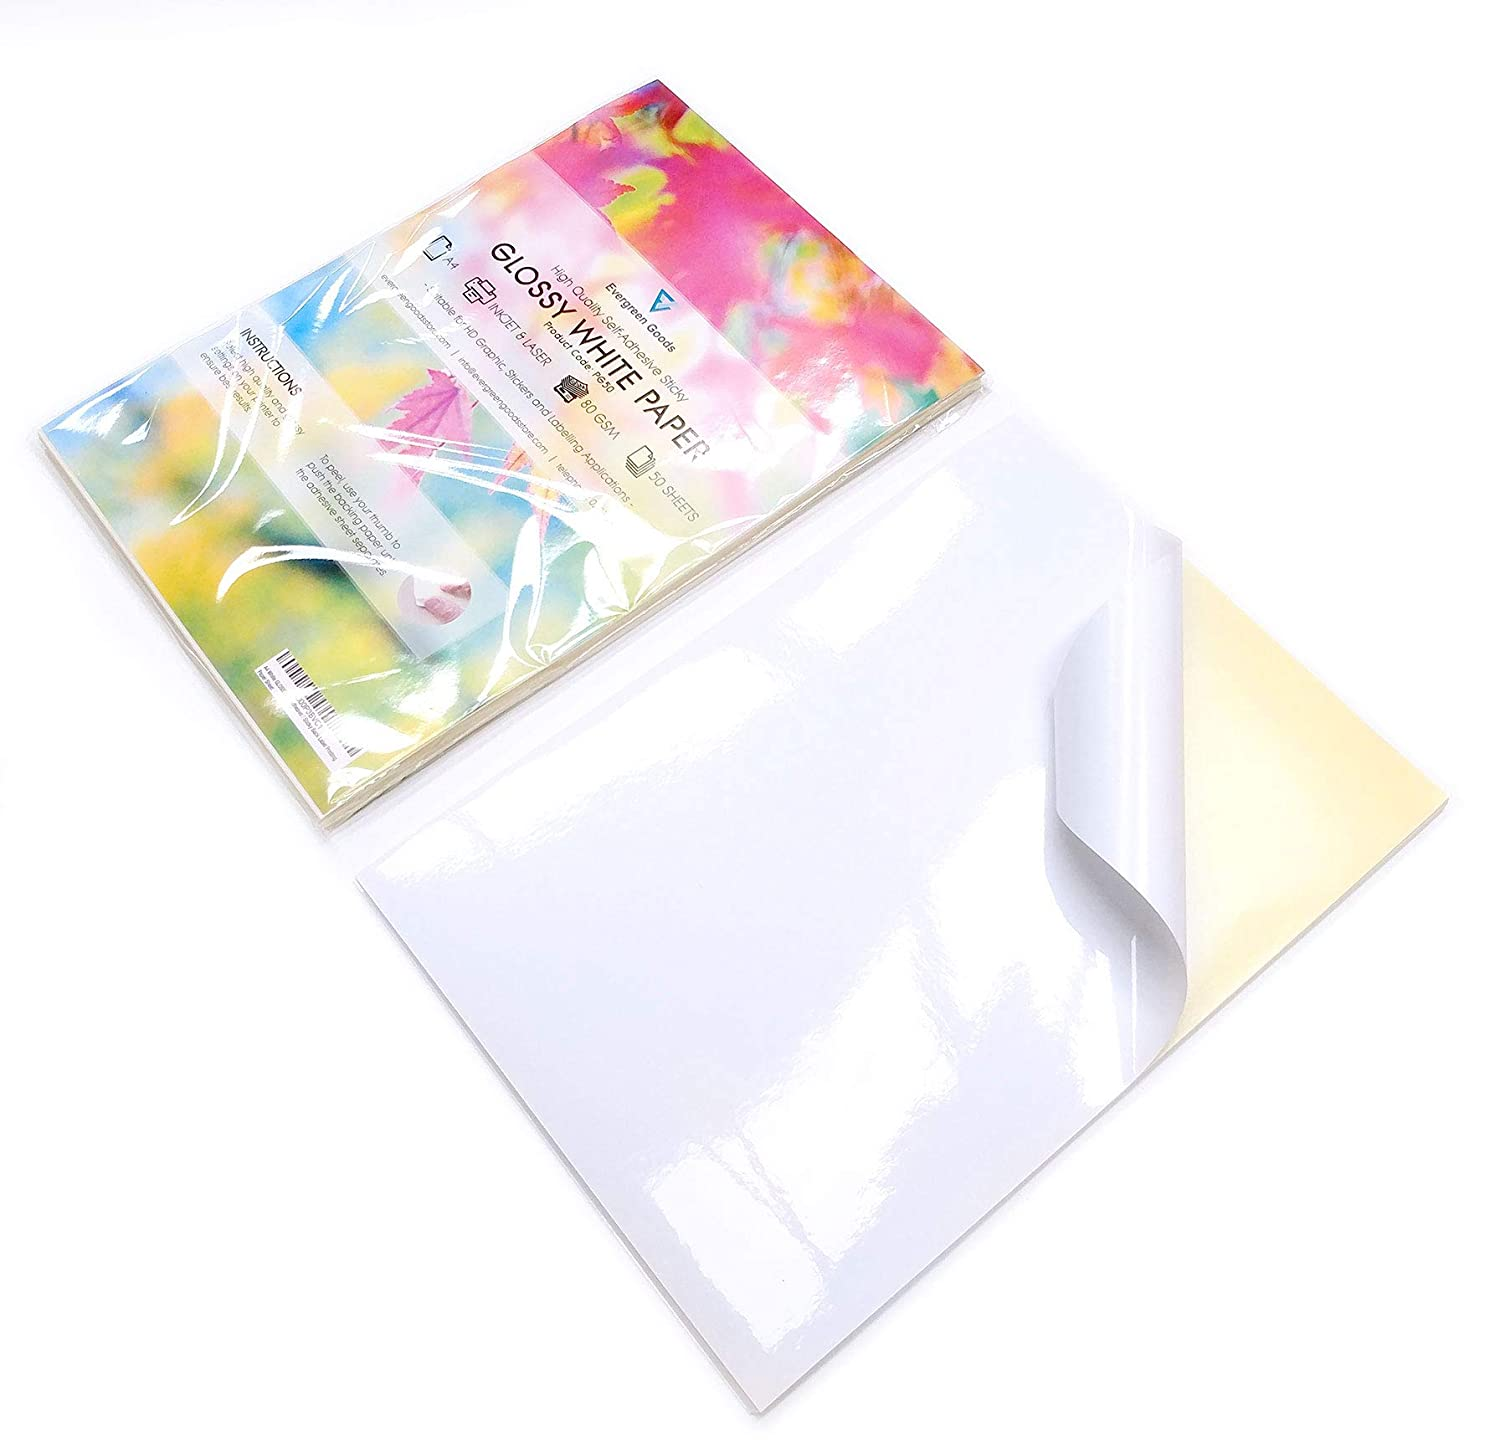 10 Sheets of Quality A4 White GLOSSY Self Adhesive / Sticky Back Label Printing Paper Sheet Evergreen Goods